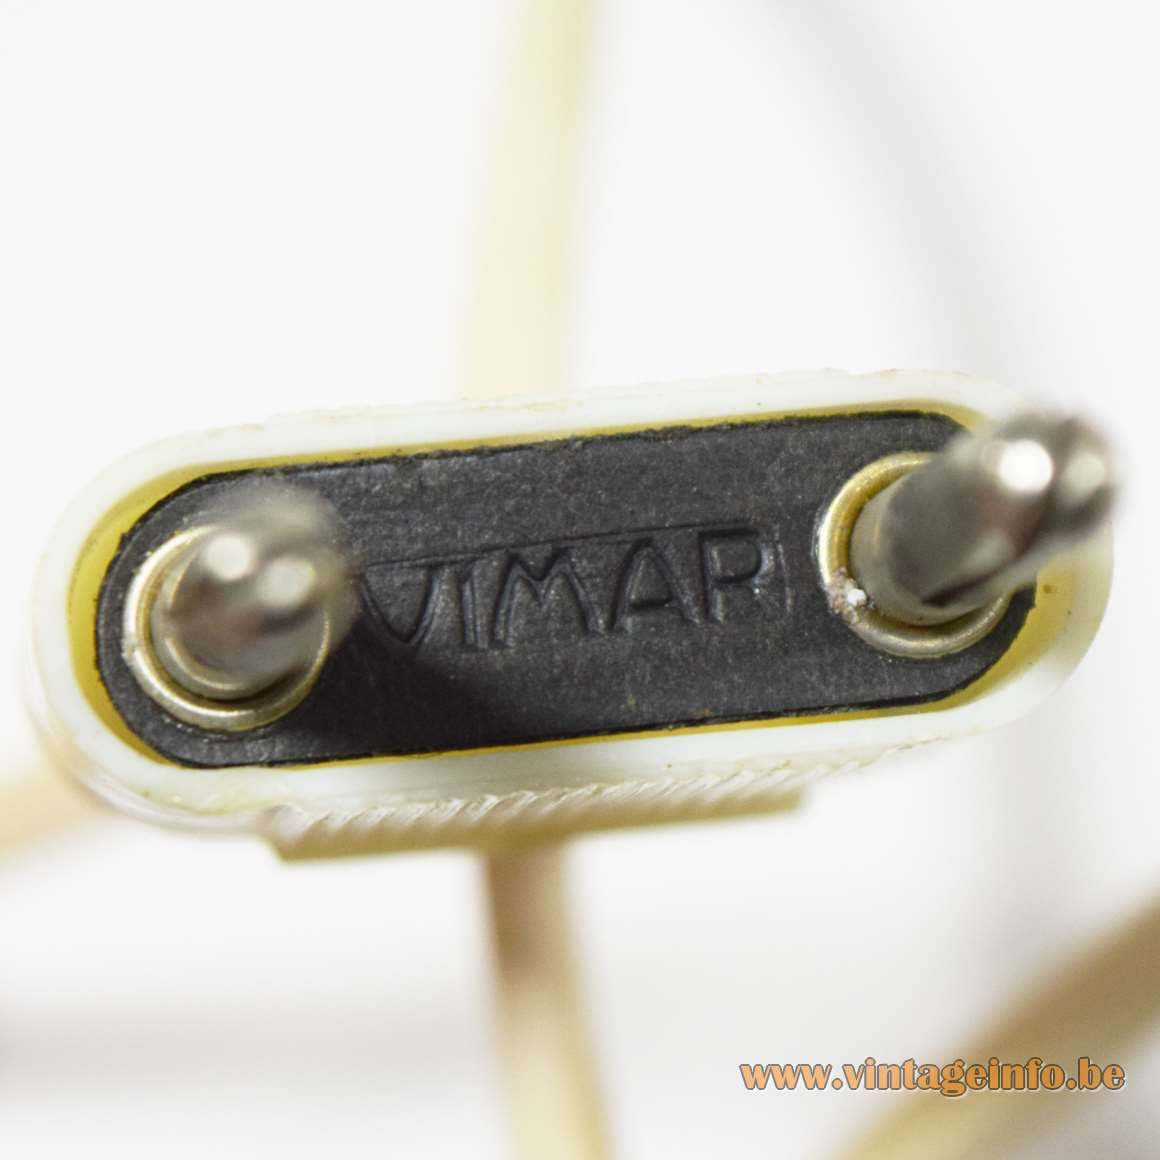 1960s Vimar Plastic Clamp Lamp - Vimar logo on the plug